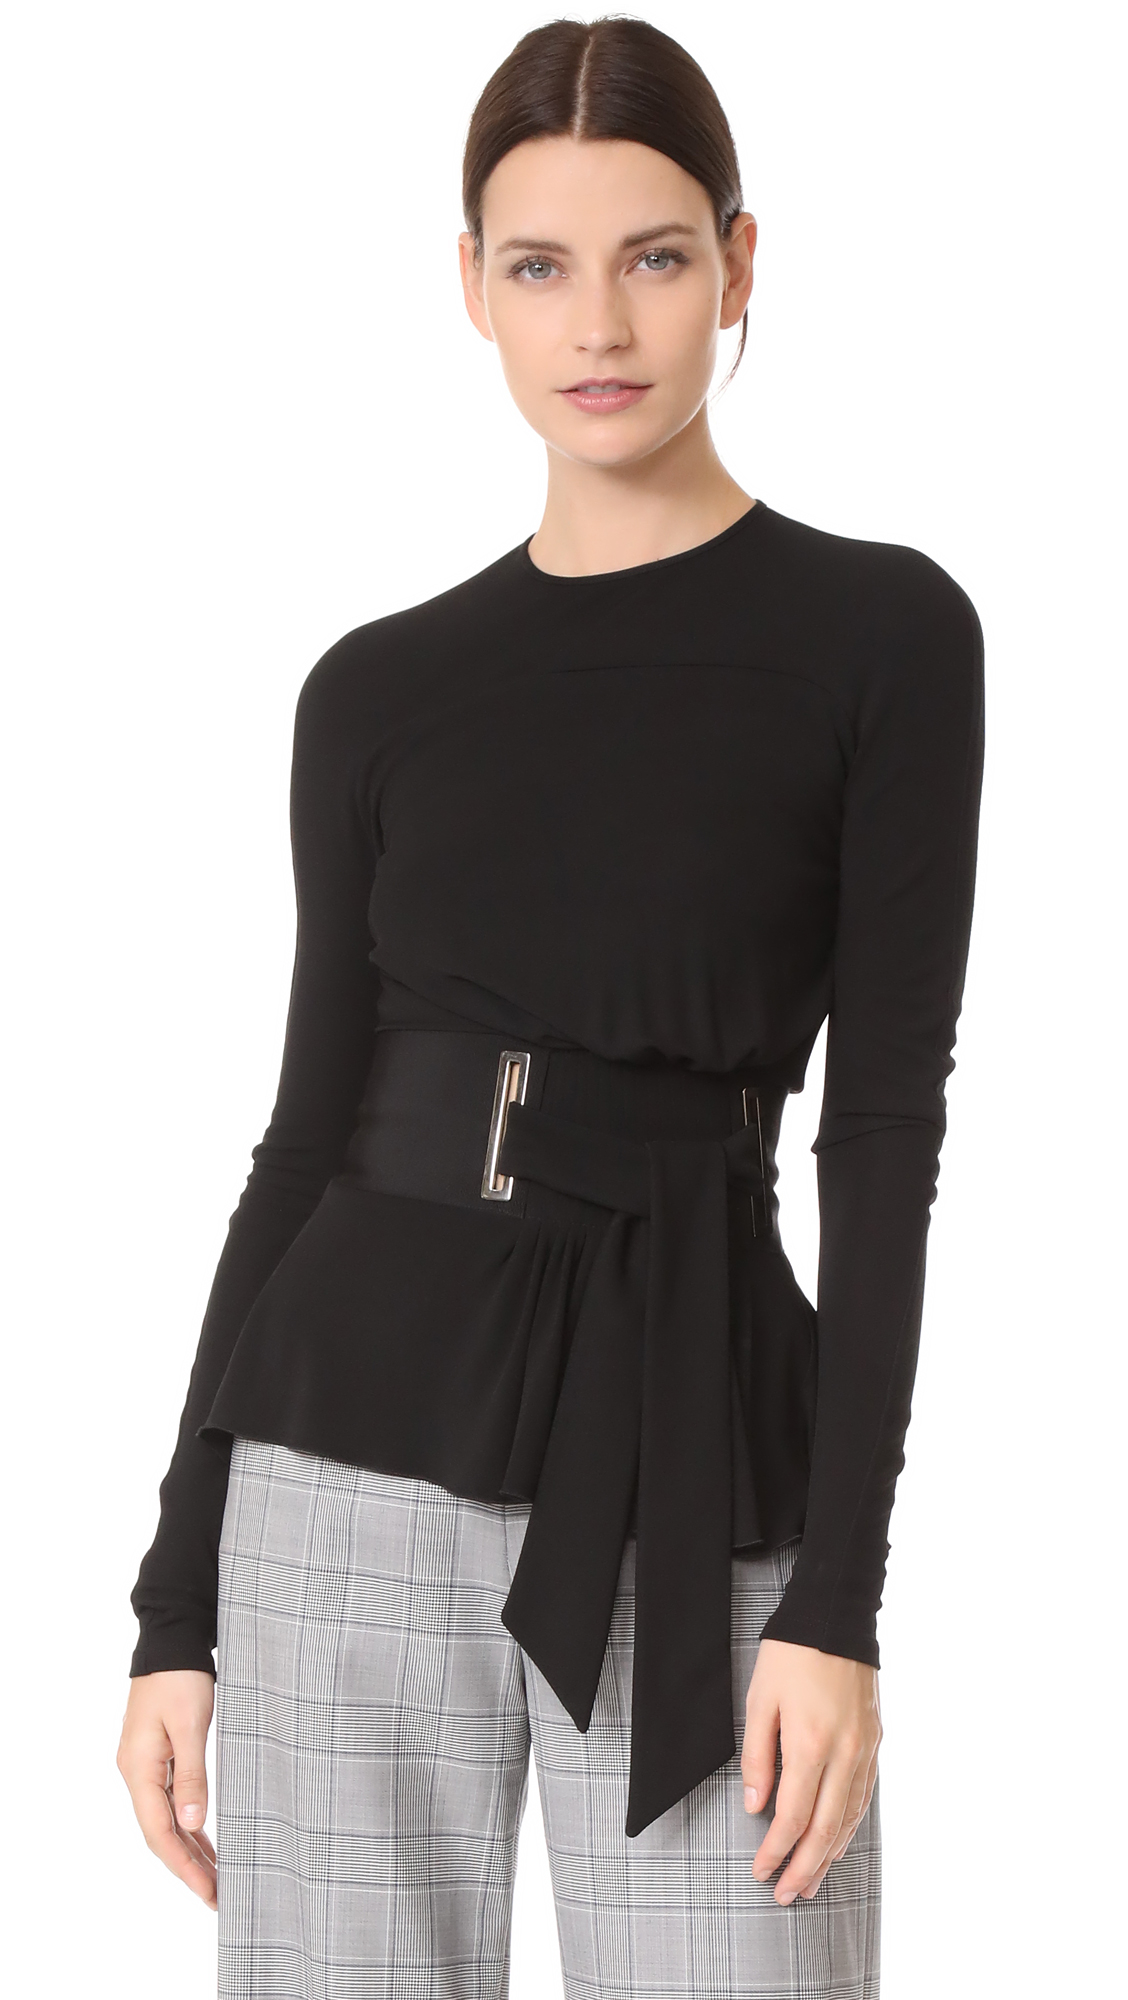 Antonio Berardi Long Sleeve Blouse - Nero